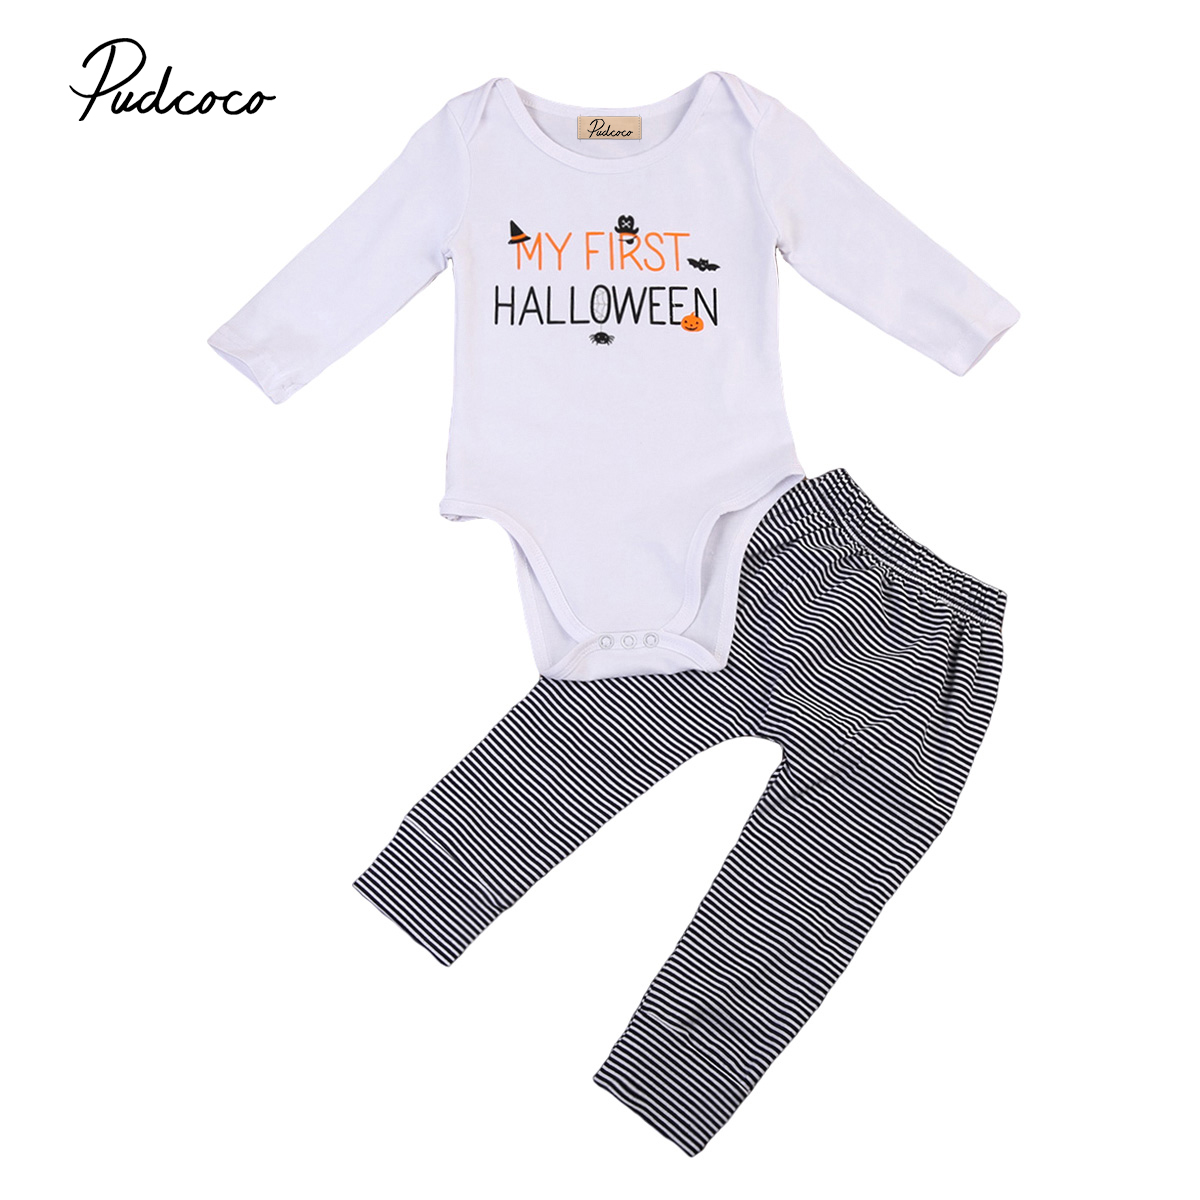 Hot Fashion Pumpkin Baby Suits Newborn Baby Boy Girl Halloween Jumpsuits Long Sleeve Rompers Toddler Striped Pants 2pcs Outfits